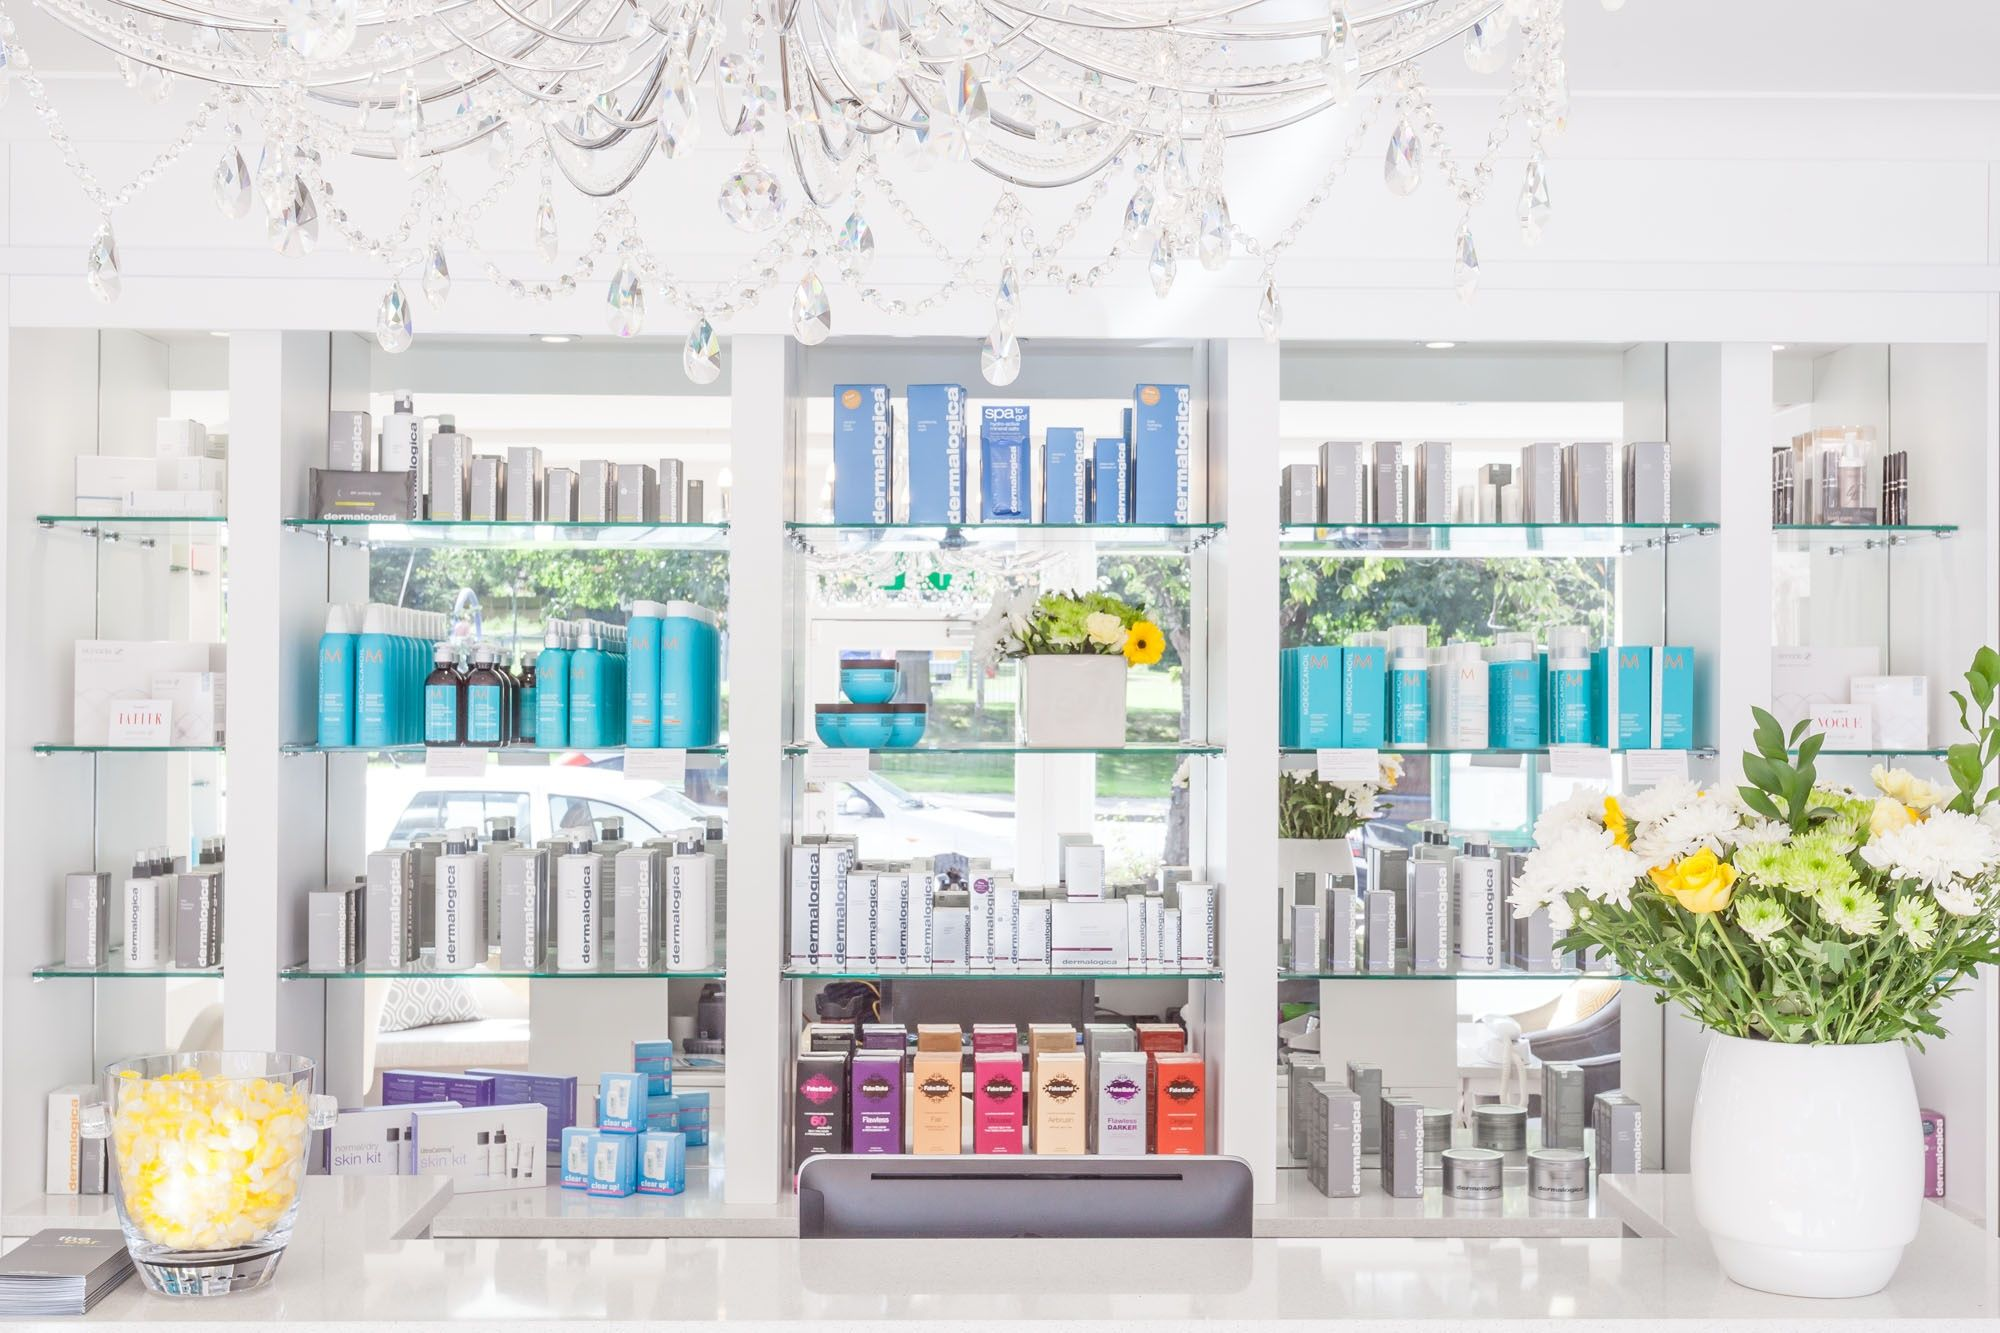 The Luxury Salon interior at The Bar, Chigwell. An approved Moroccan Oil, Dermalogica, Shrinking Violet Body Wrap and Lash Perfect salon.